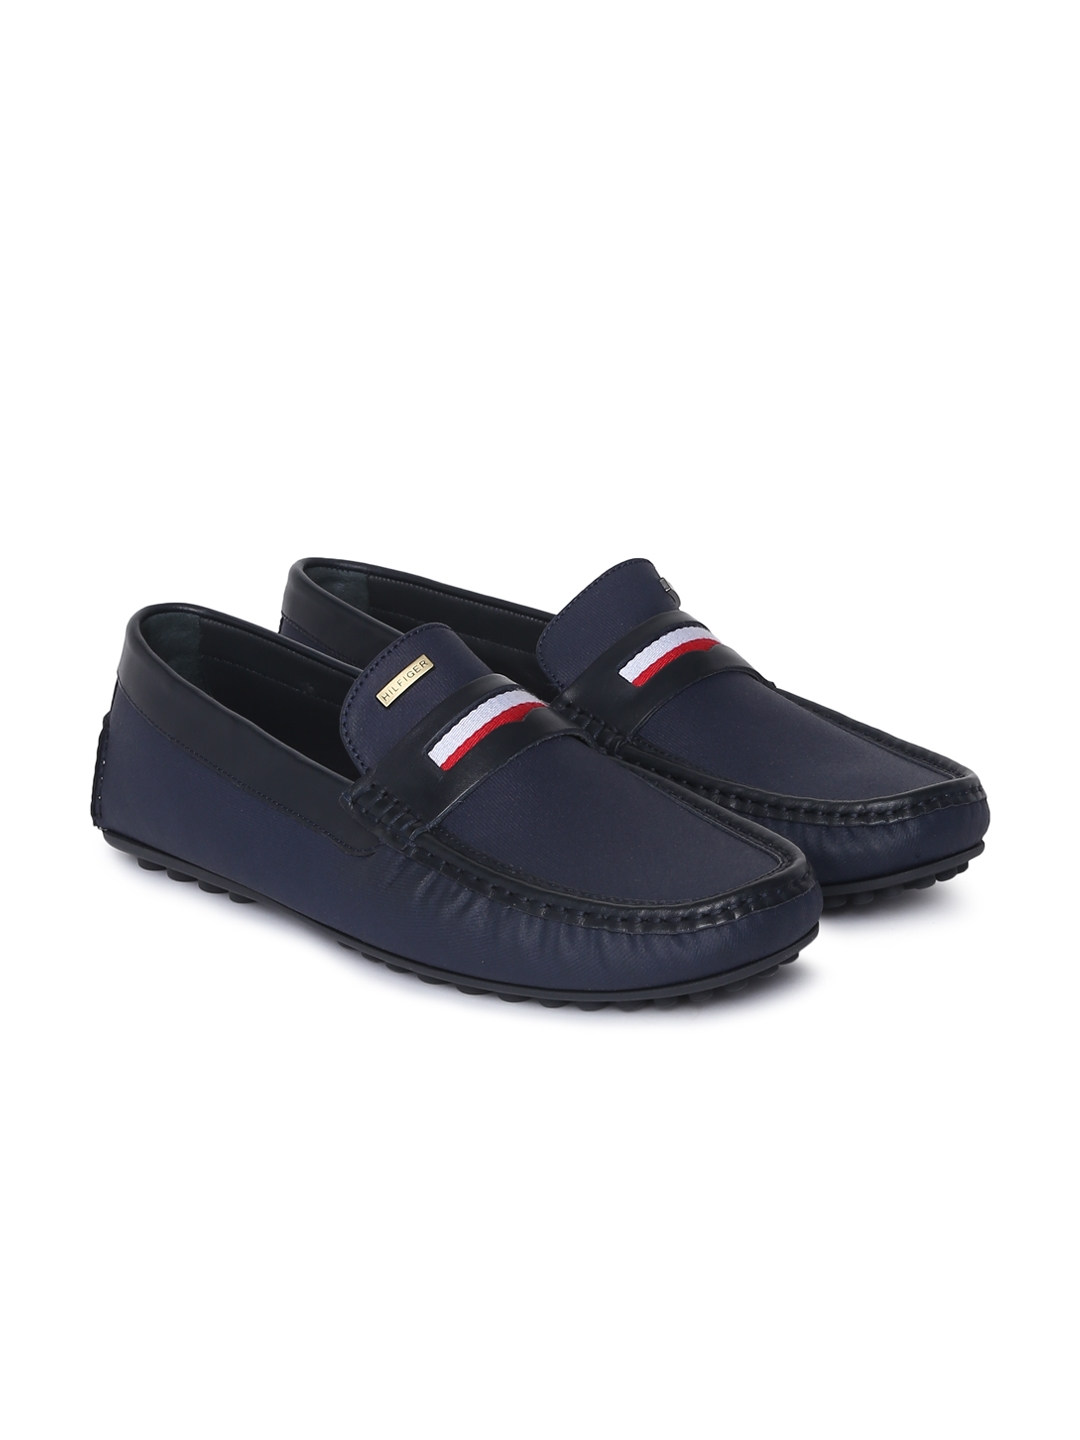 570e2ae0829fe Buy Tommy Hilfiger Men Navy Blue Loafers - Casual Shoes for Men ...